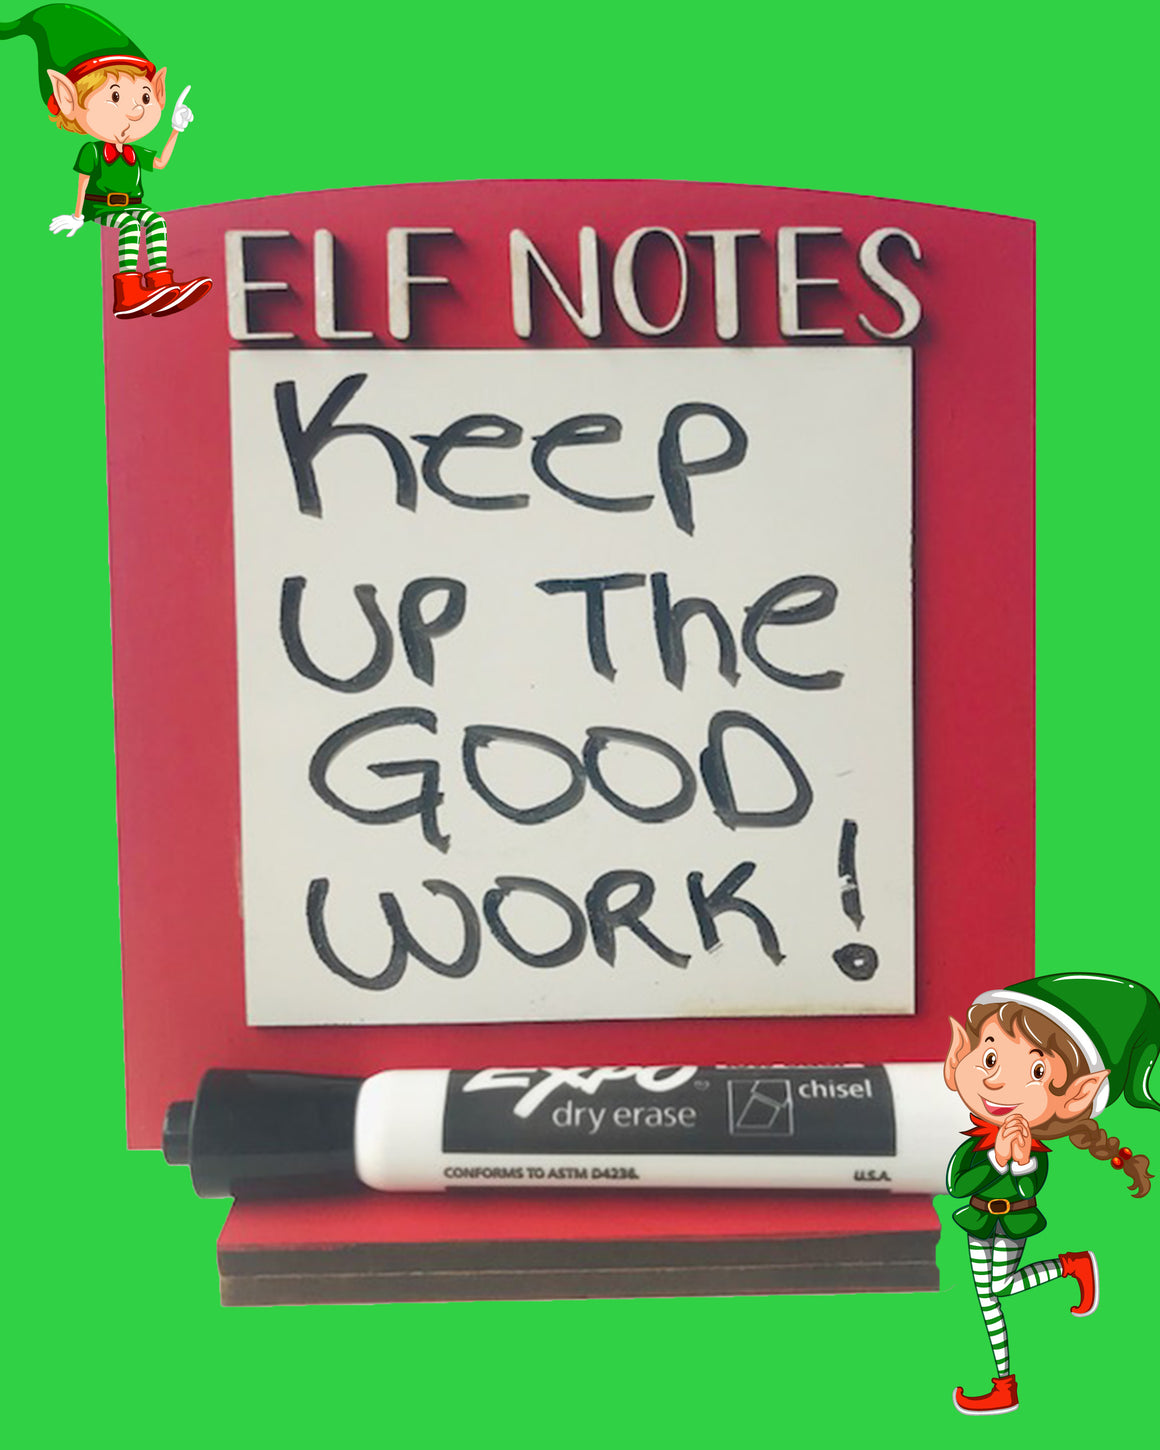 Elf Notes Dry Erase Board